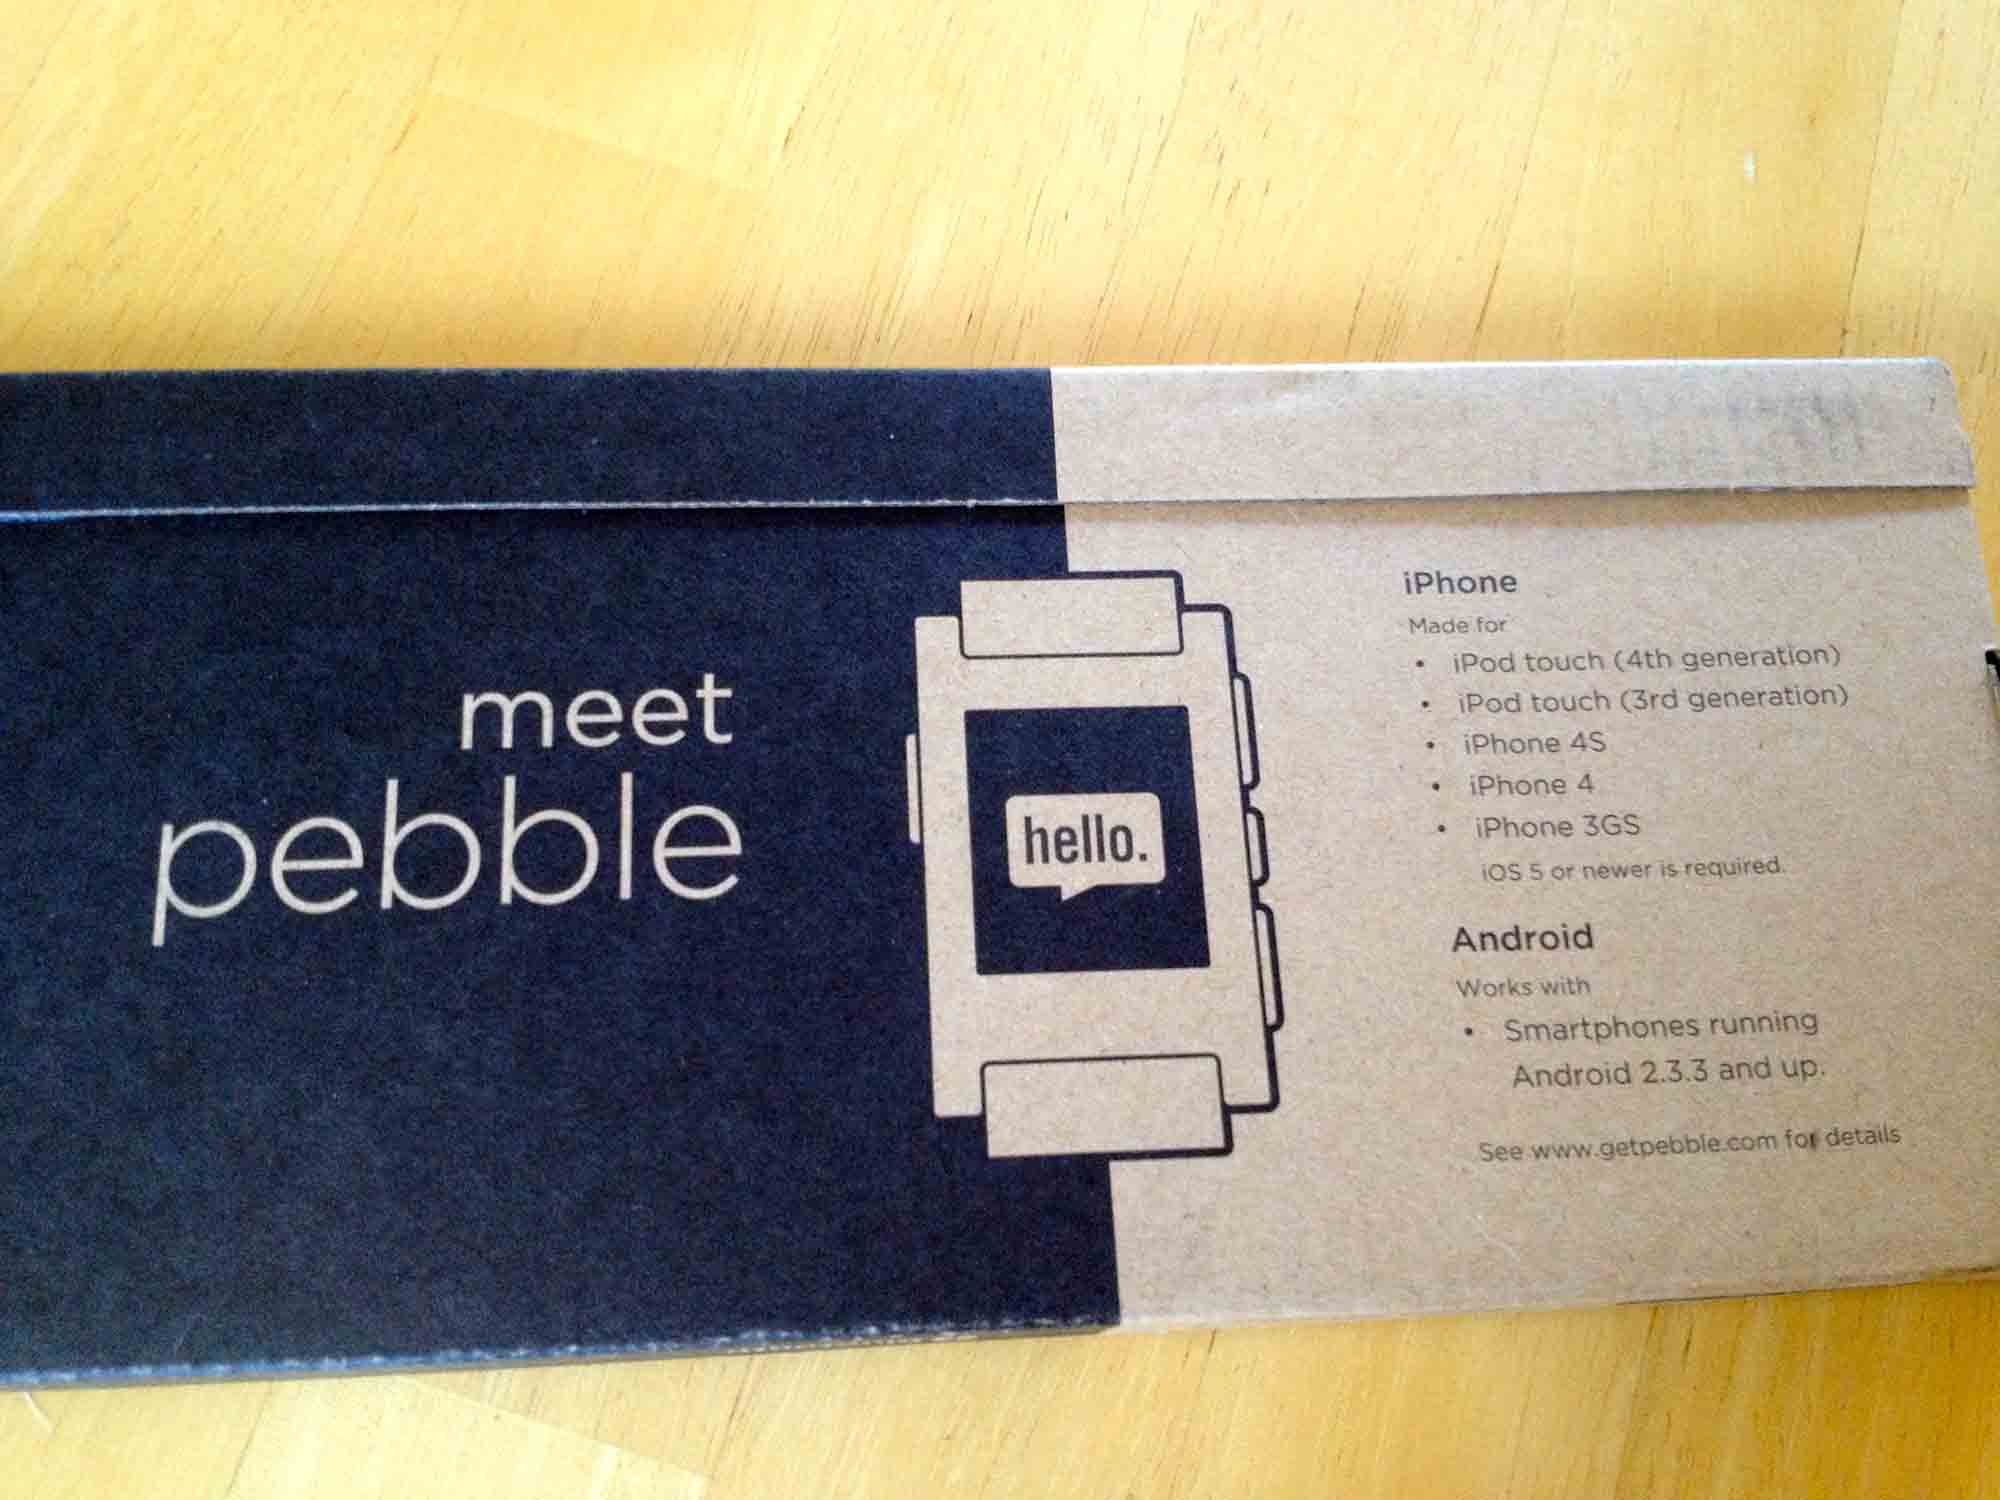 Pebble's Box